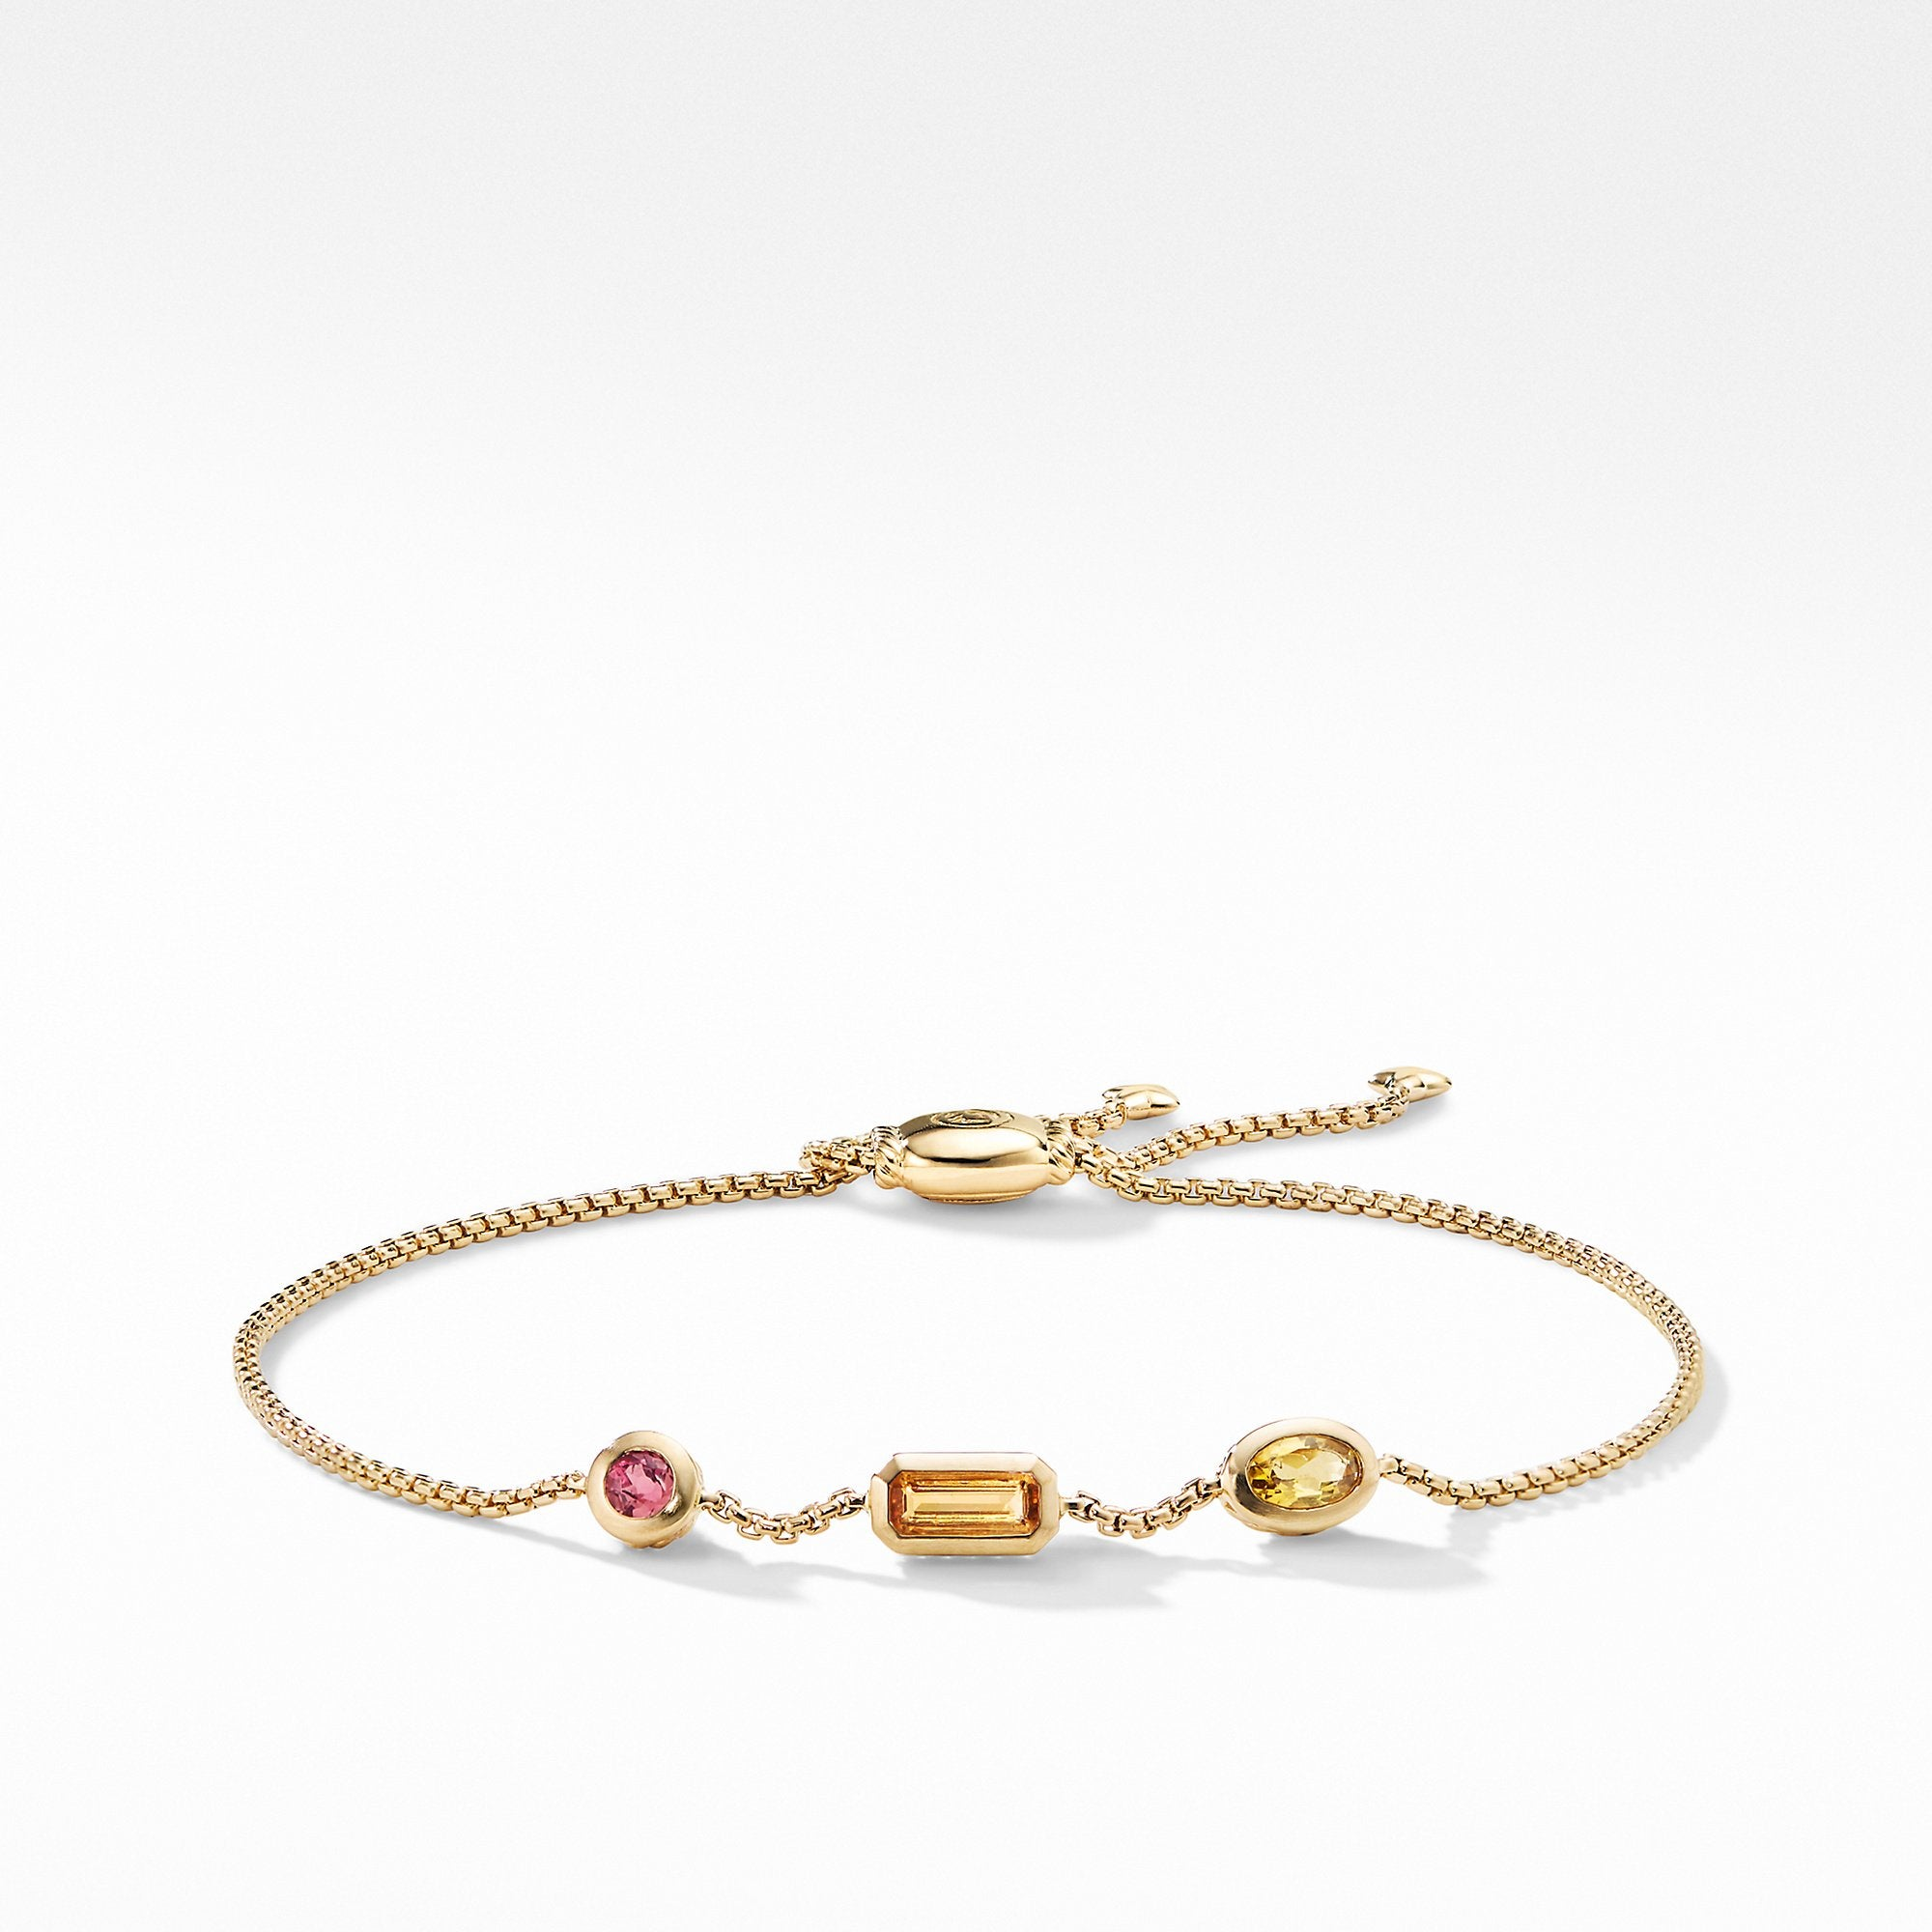 Novella Chain Bracelet in Citrine, Yellow Beryl, and Pink tourmaline